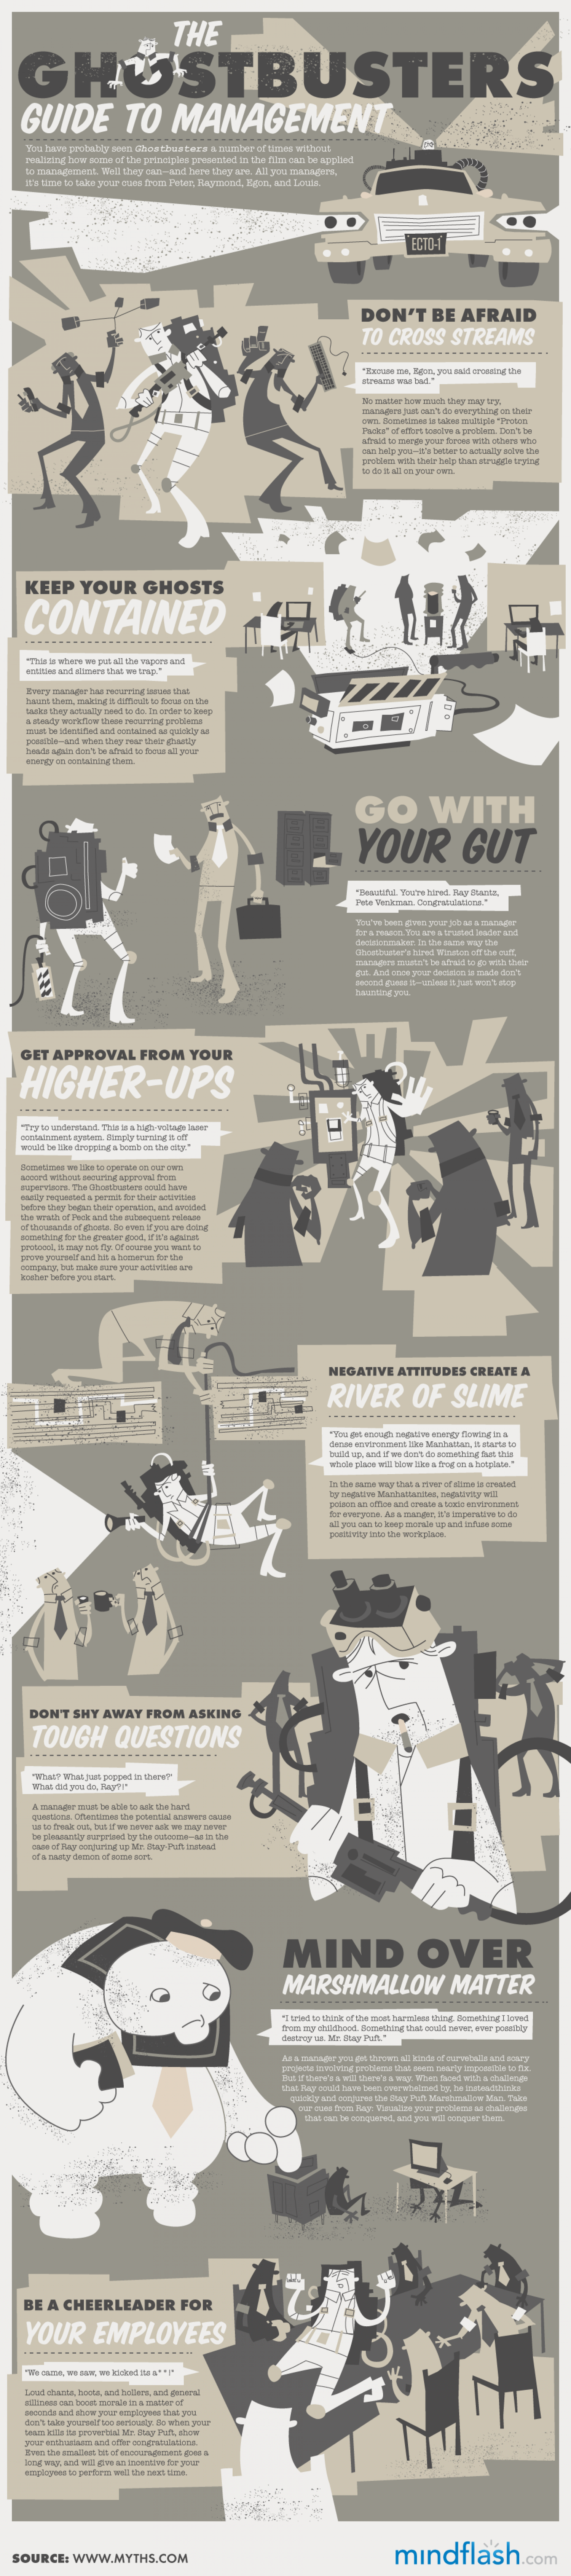 The Ghostbusters Guide to Management Infographic